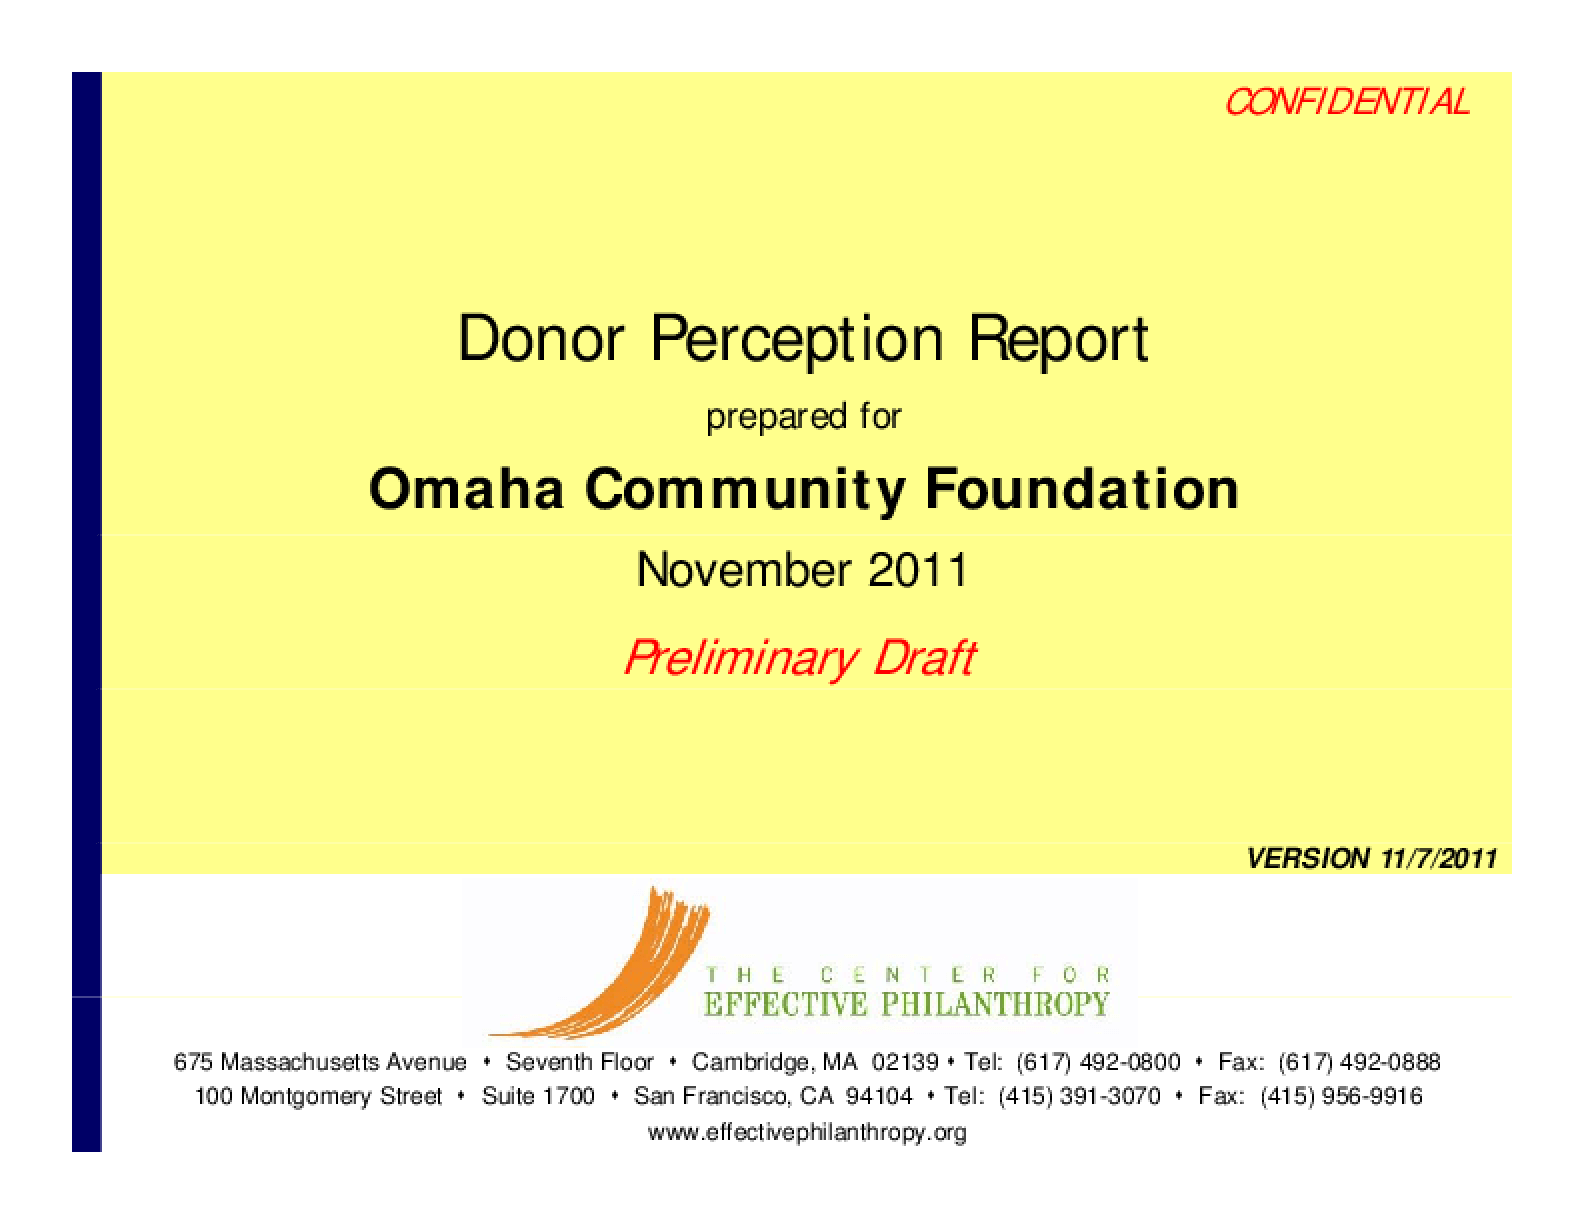 Donor Perception Report: Omaha Community Foundation